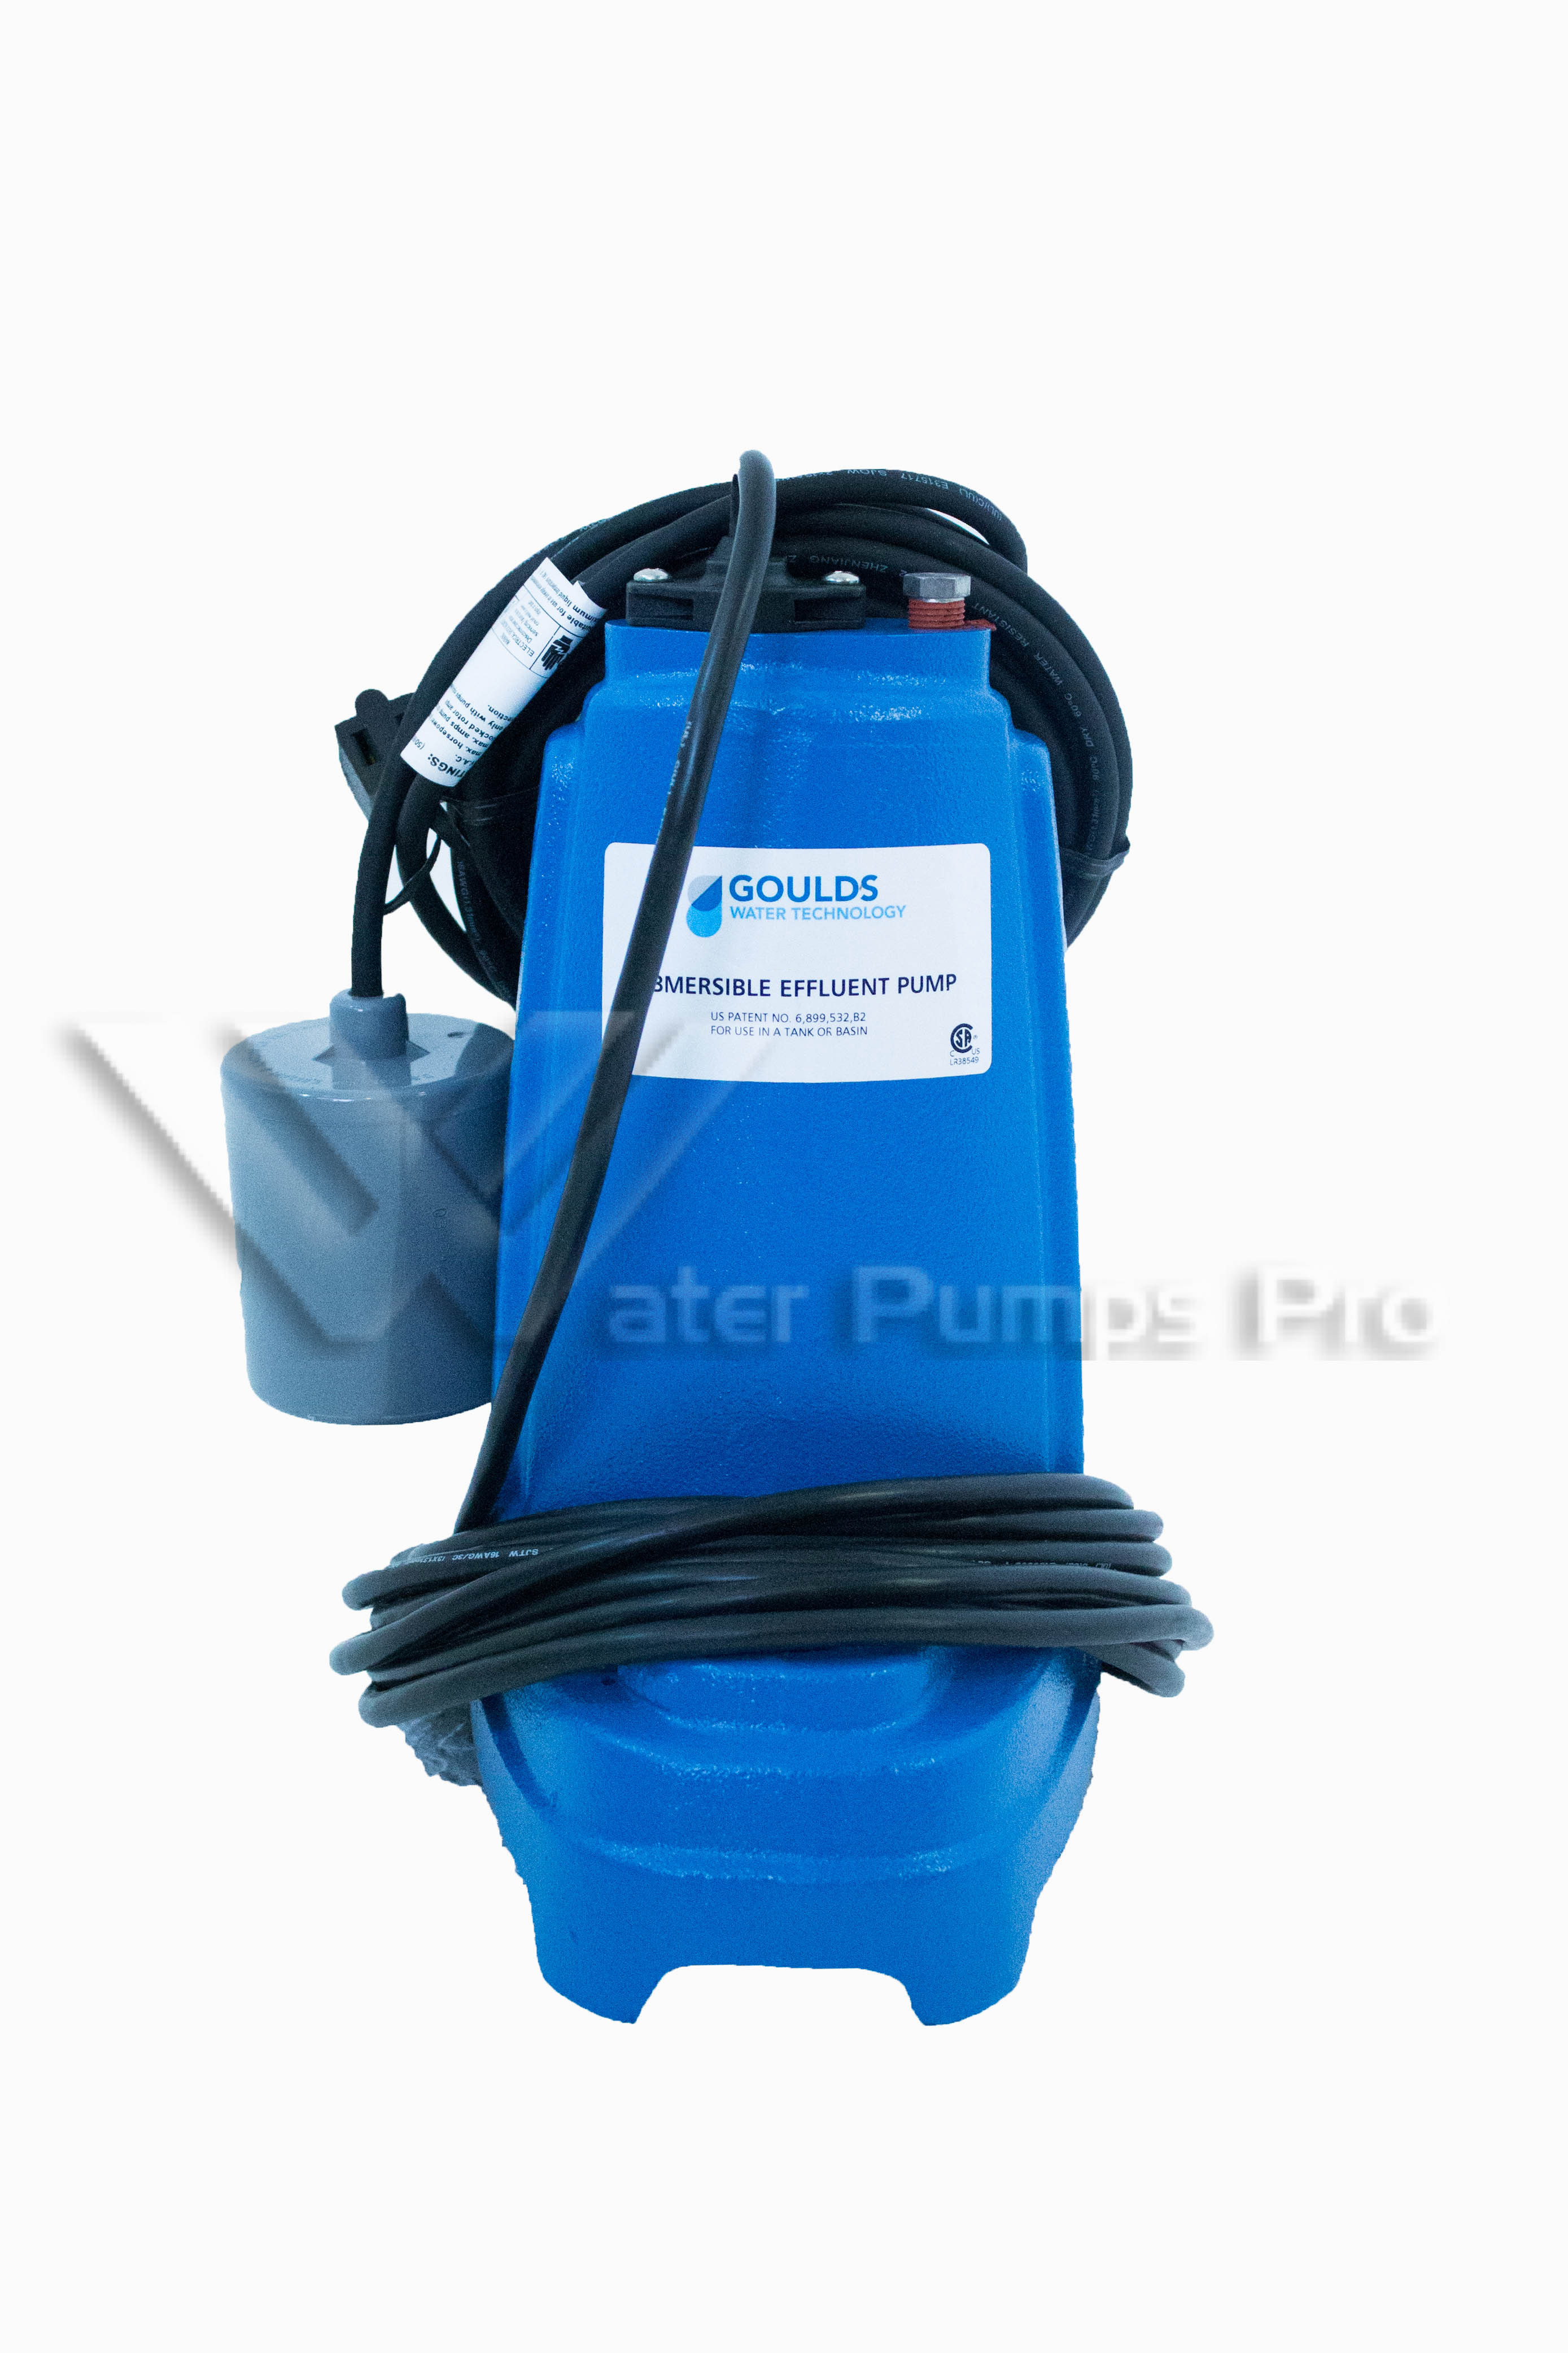 "Goulds PE31P1 1/3 HP, 115V Submersible Effluent Pump 1/2"" Solids"